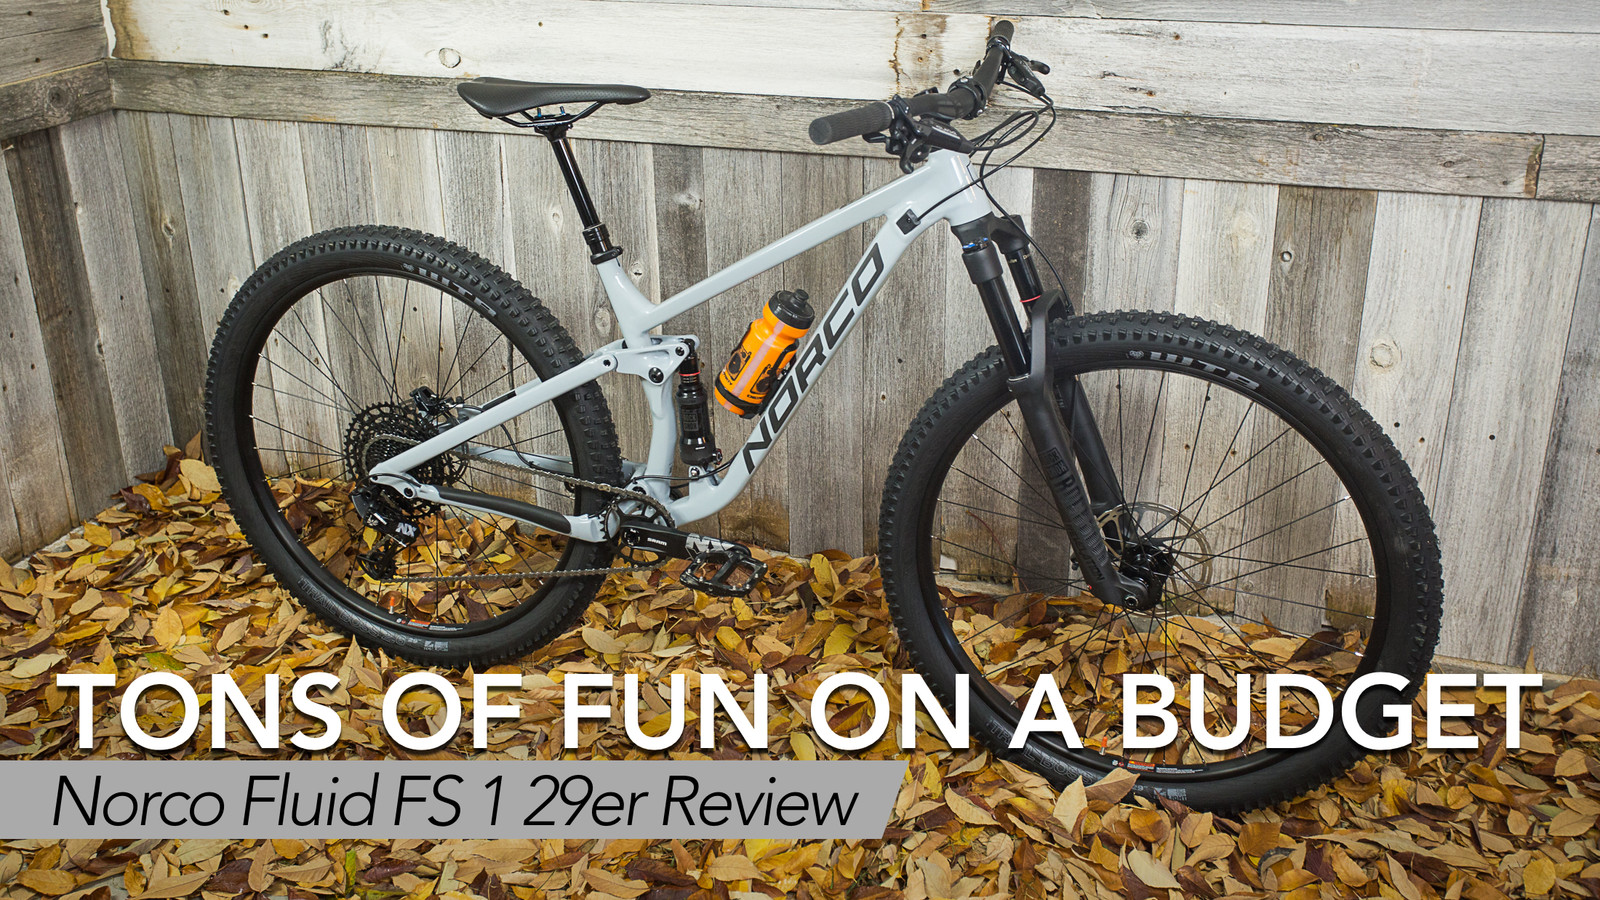 Tons of Fun on a Budget - Norco Fluid FS 1 29er Review